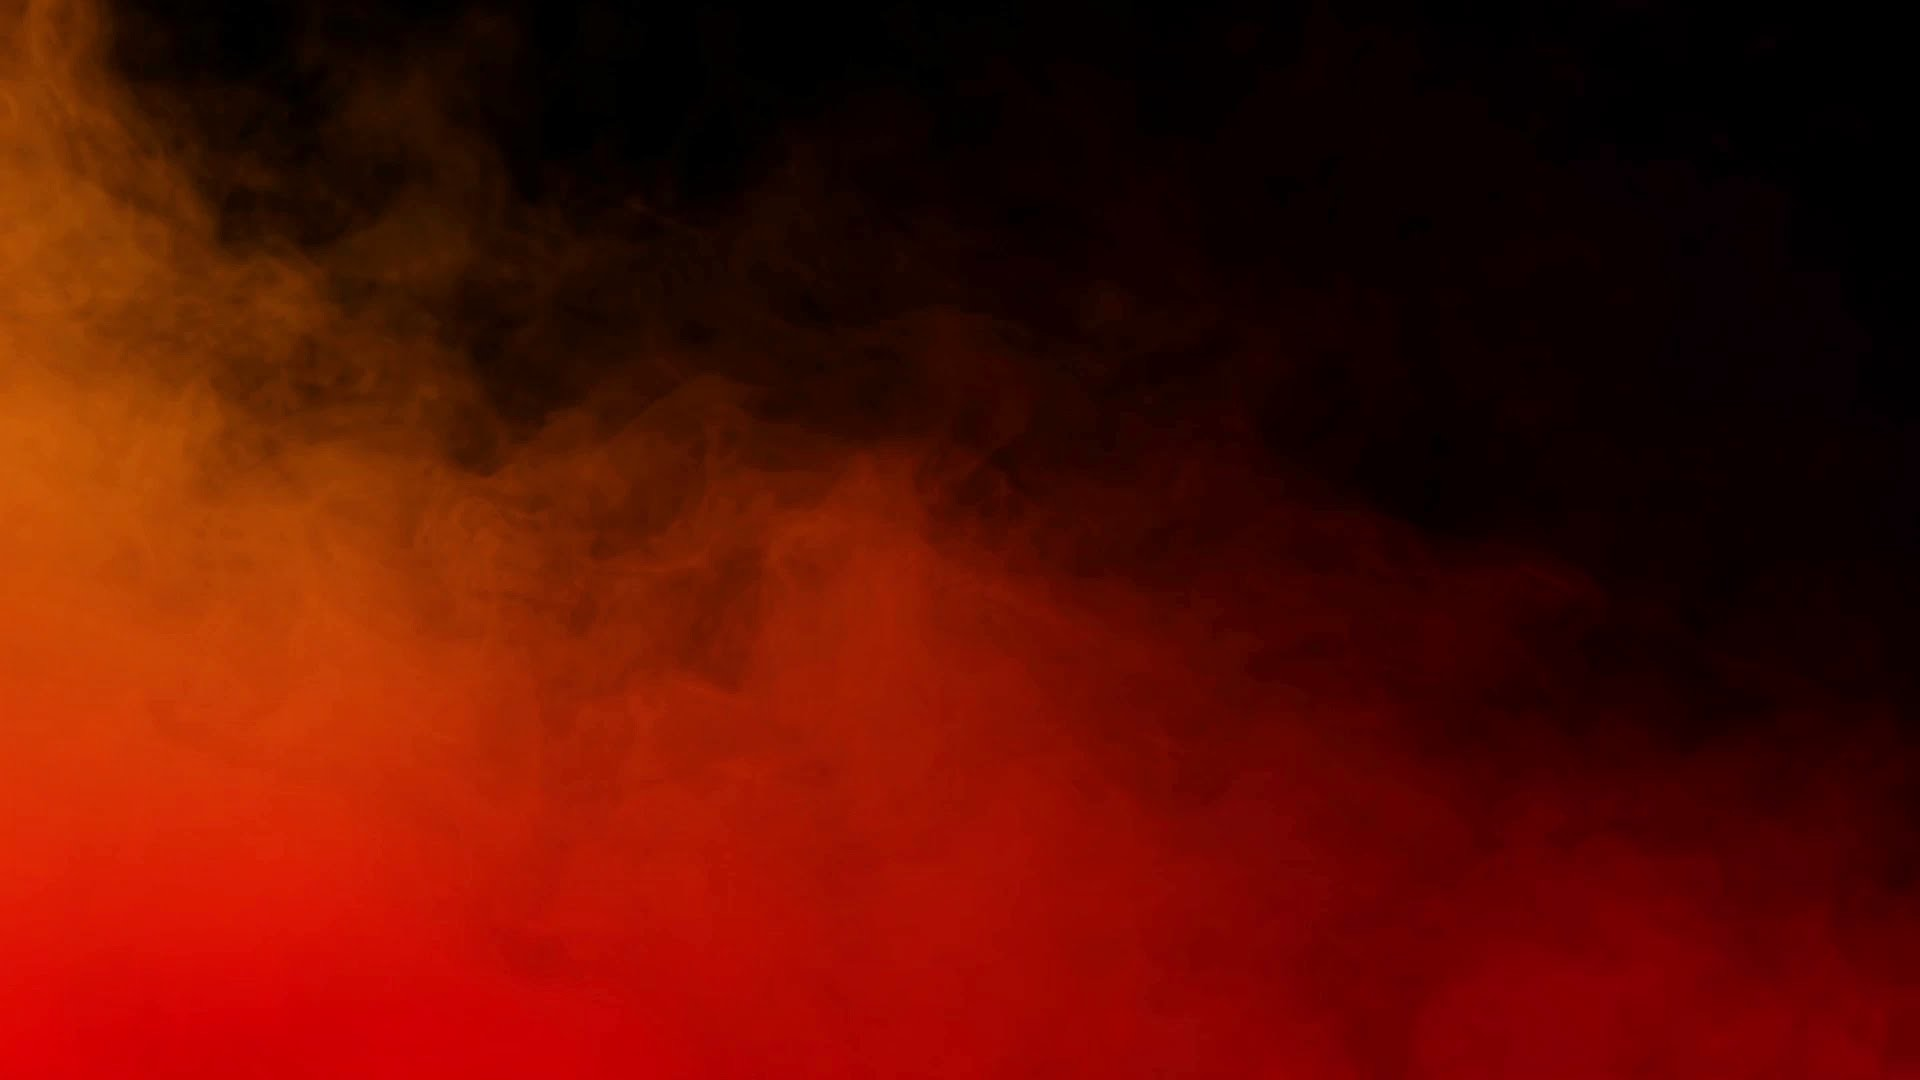 cool smoke backgrounds 60 images